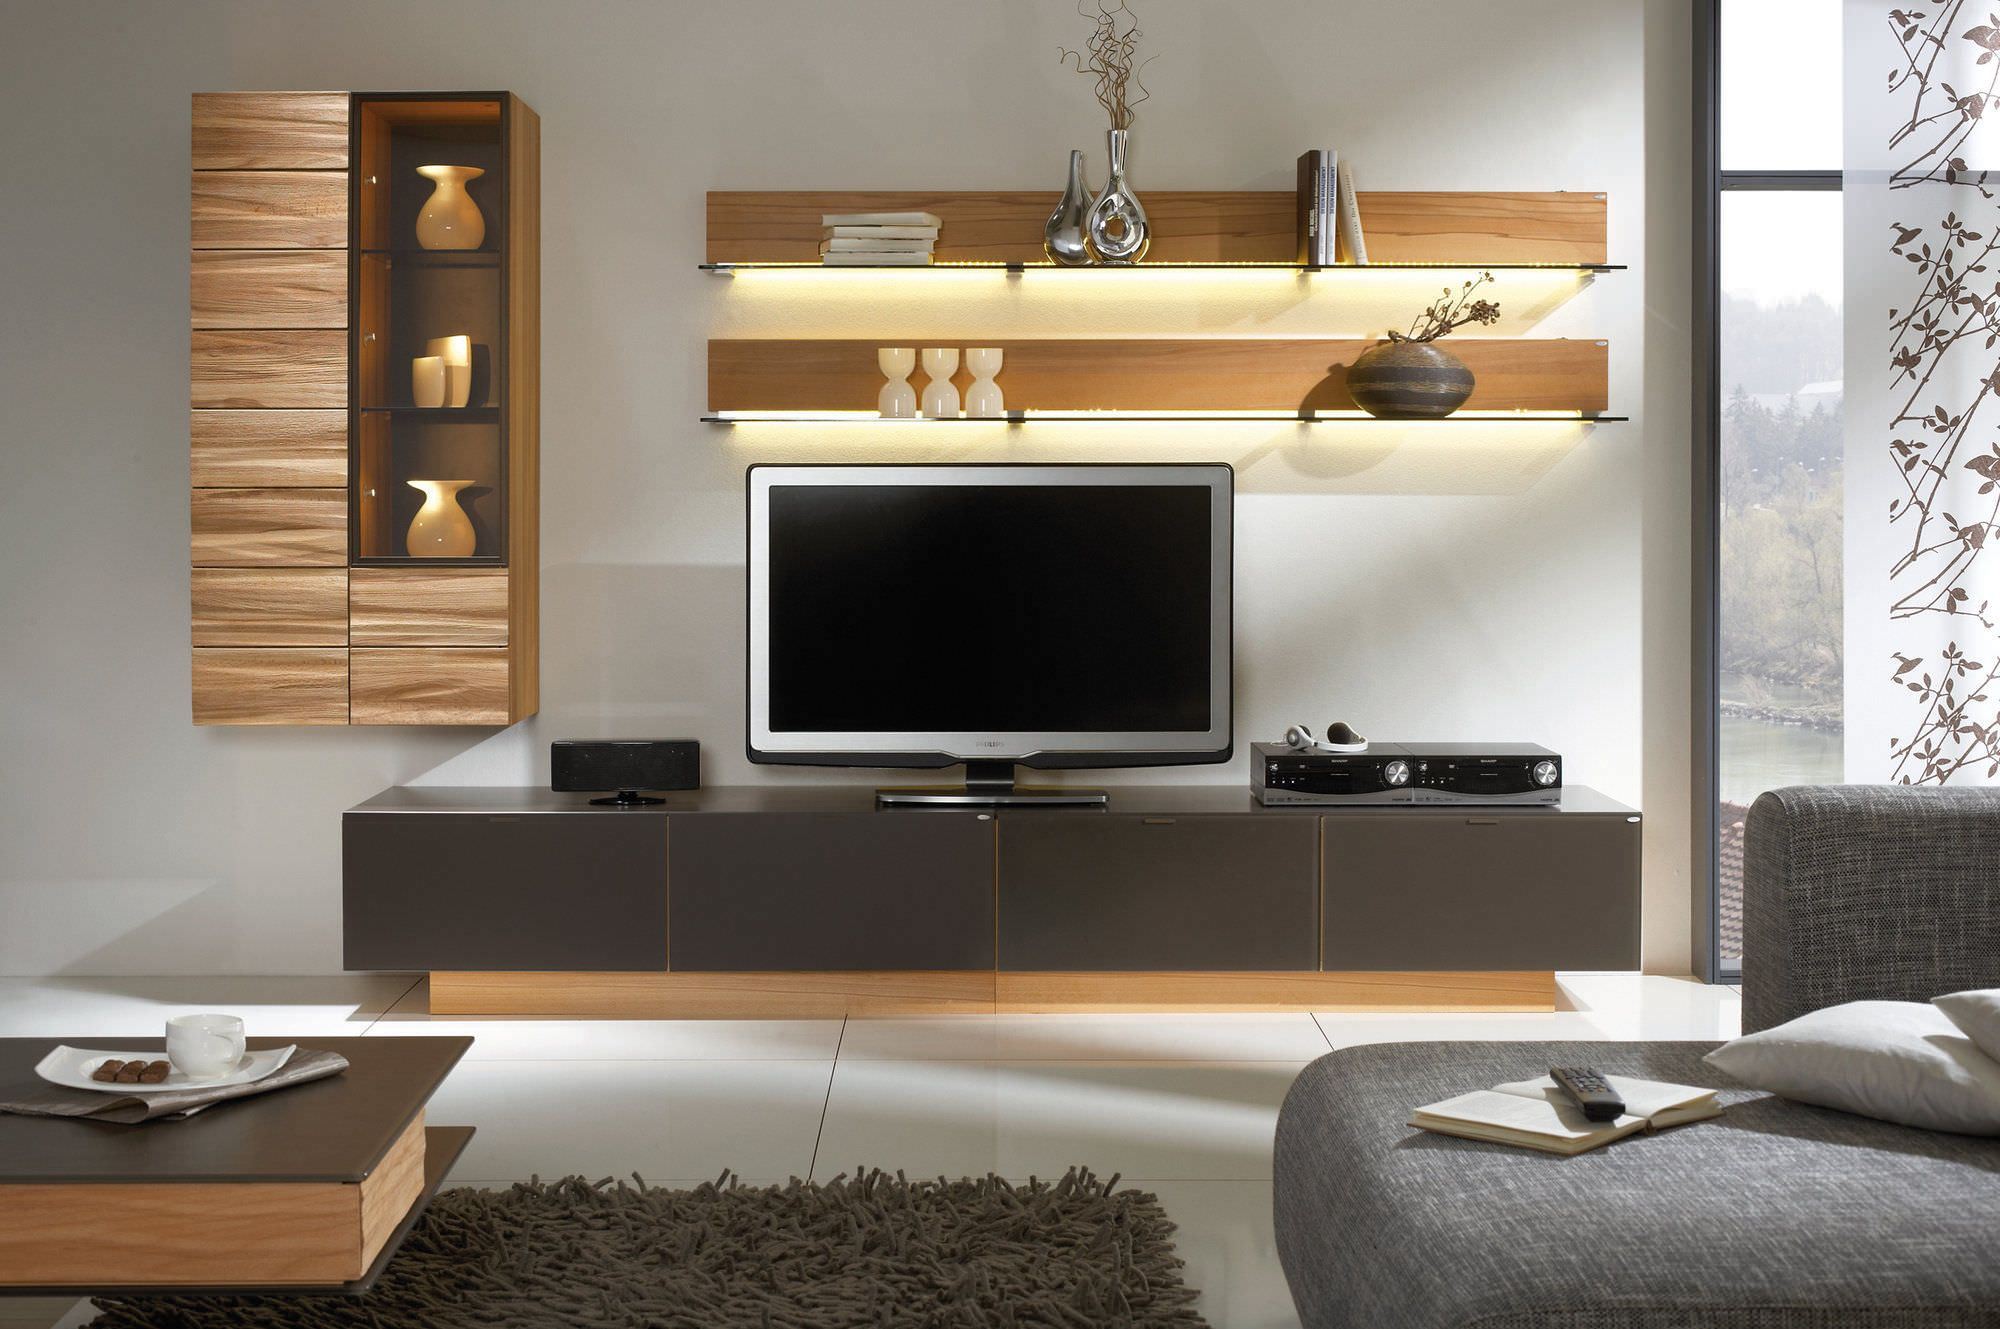 Awesome white brown wood glass cool design contemporary tv Interior design tv wall units